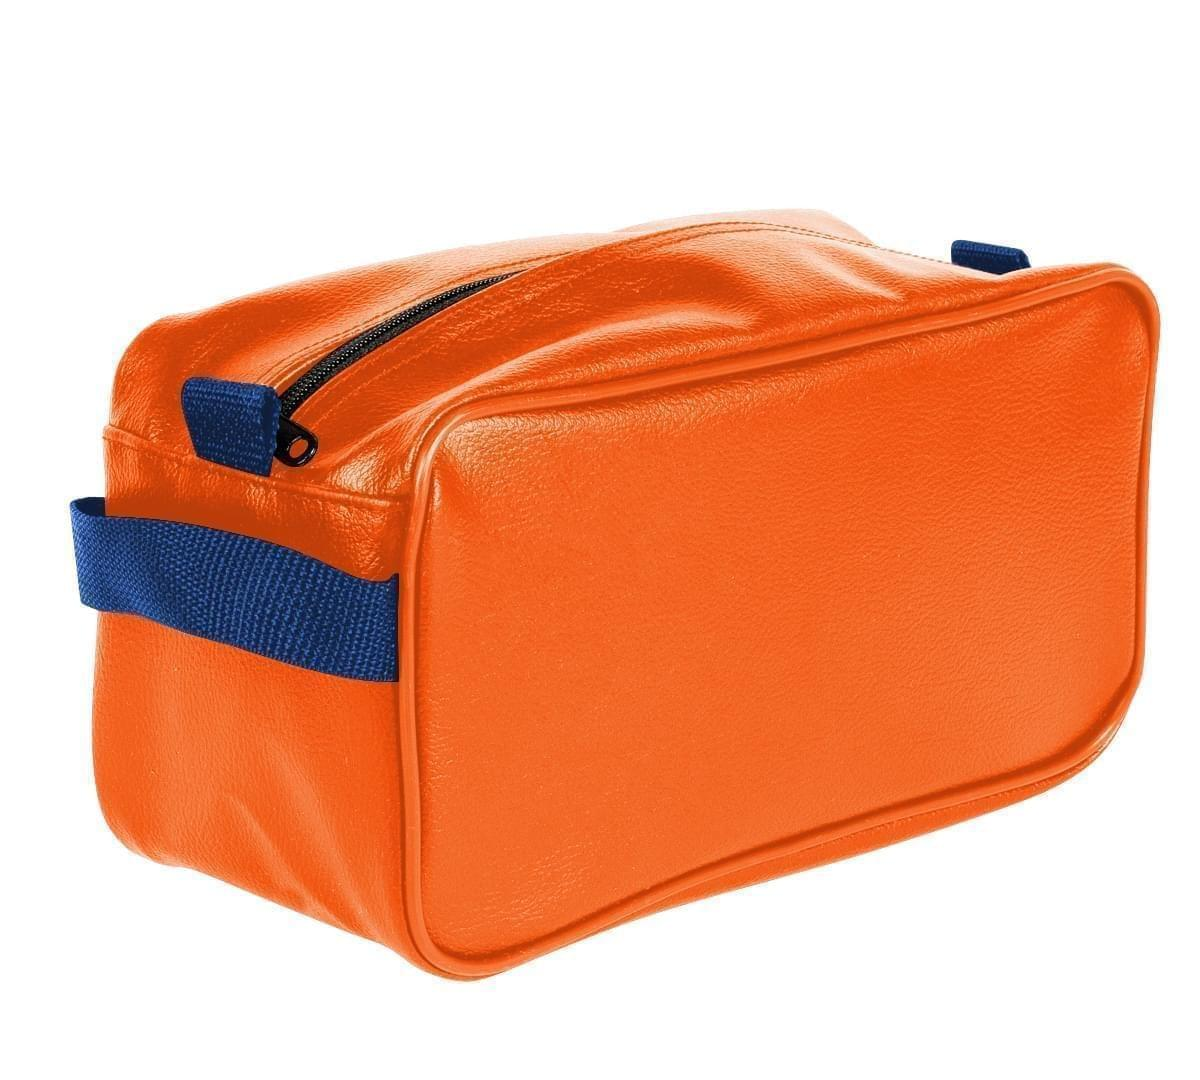 USA Made Cosmetic & Toiletry Cases, Orange-Royal Blue, 3000996-AX3